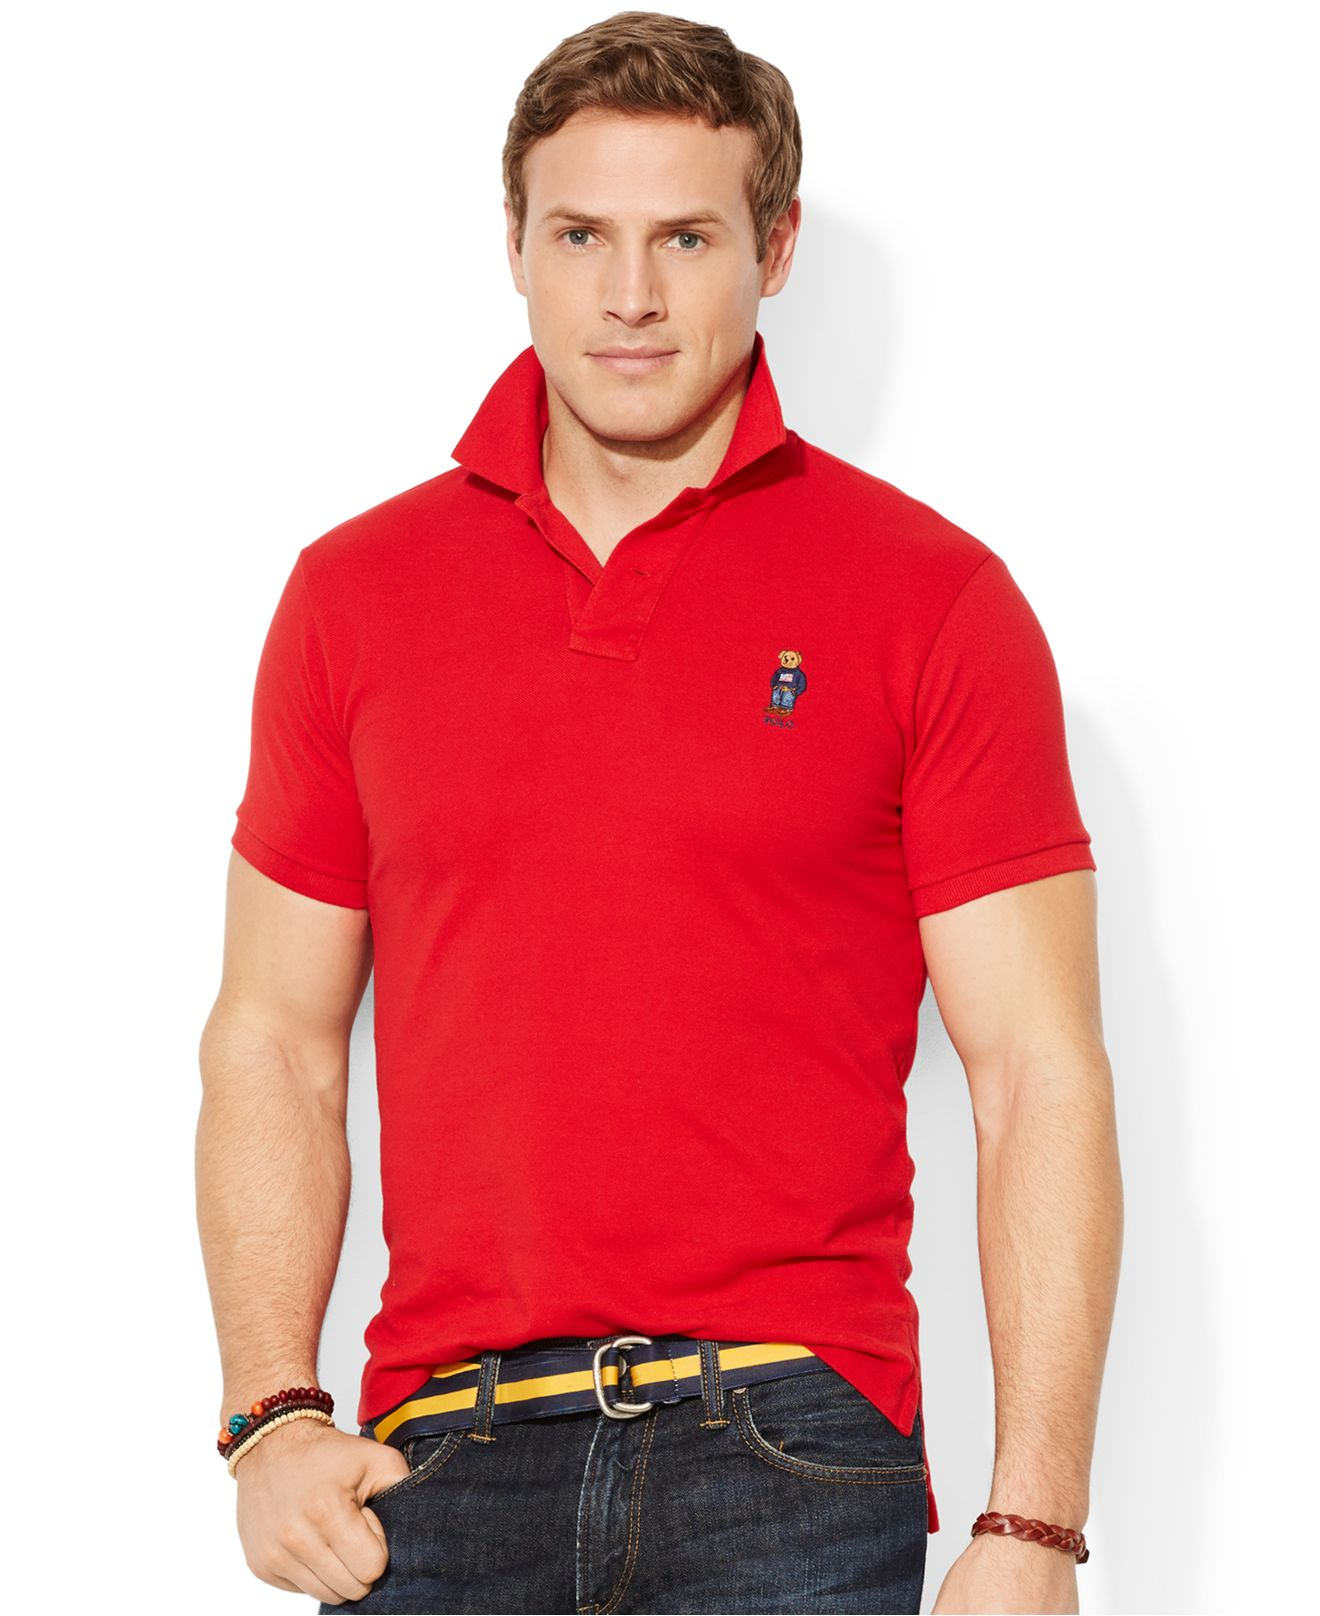 e917c19c Polo Ralph Lauren Big And Tall Classic-Fit Polo Bear Mesh Shirt in ...